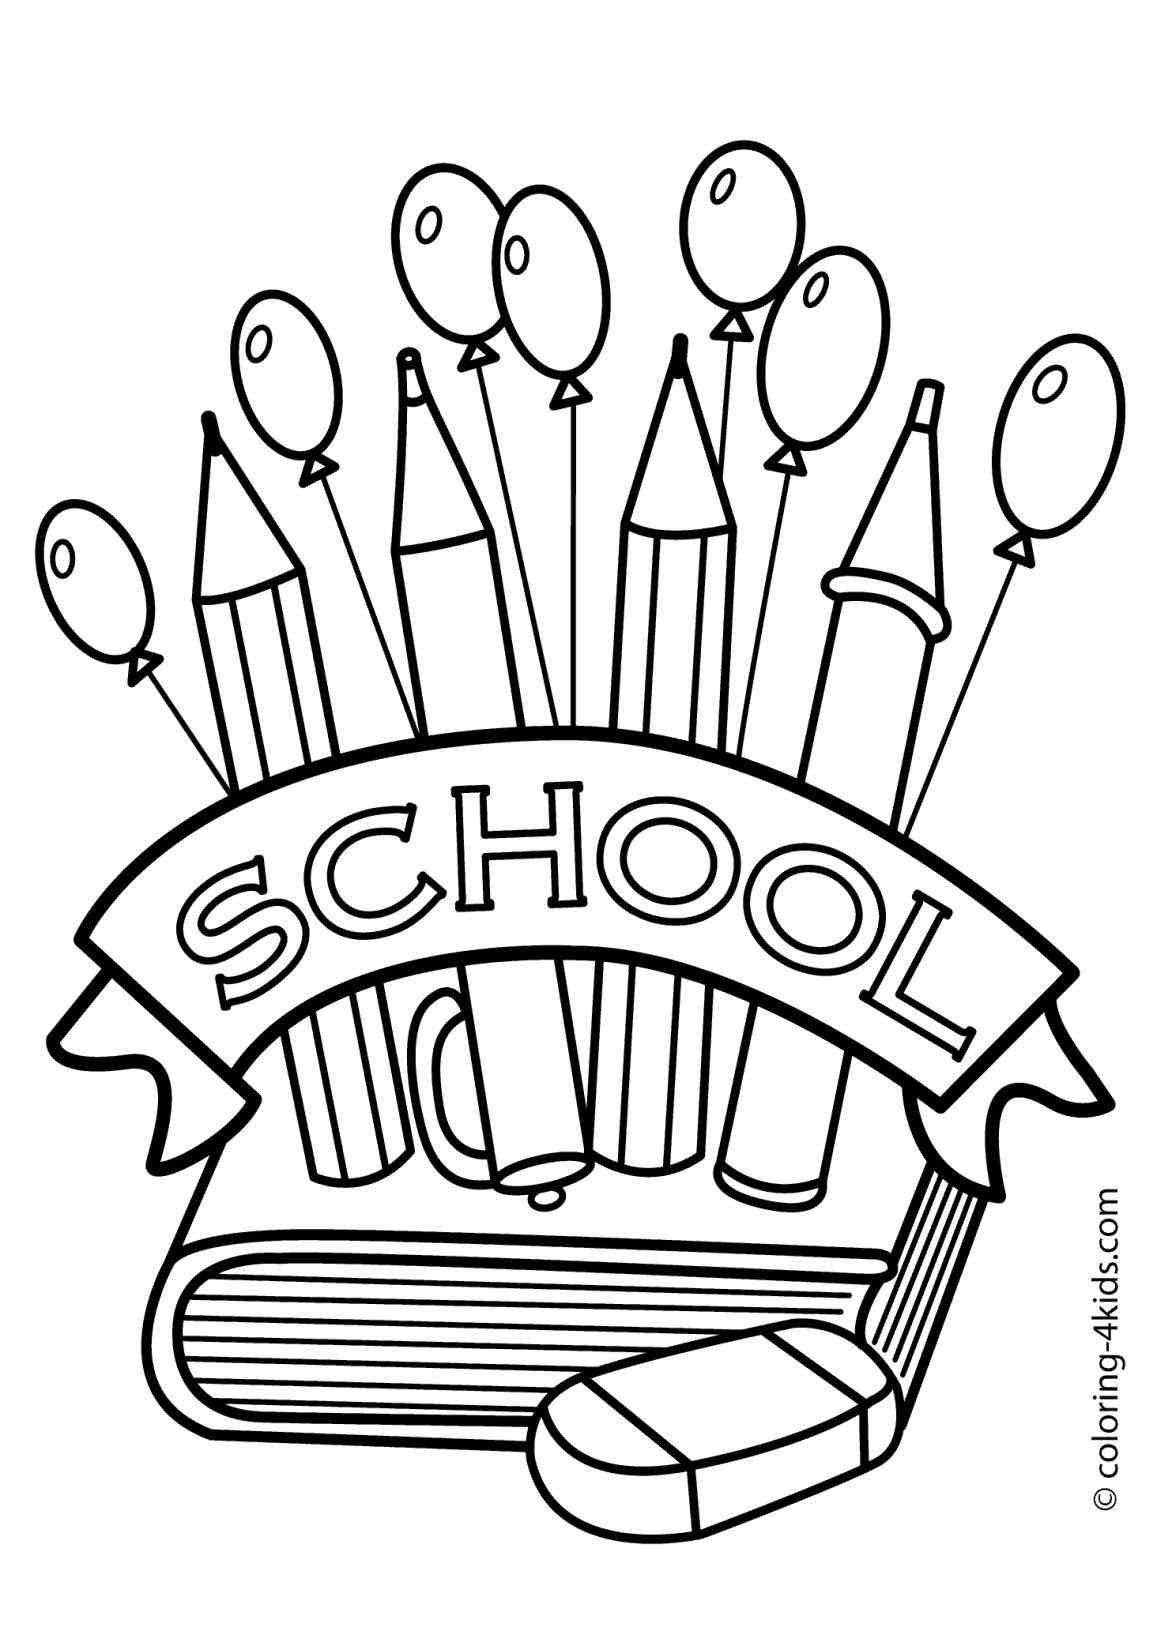 coloring art kit school supplies coloring page for children back to school art coloring kit